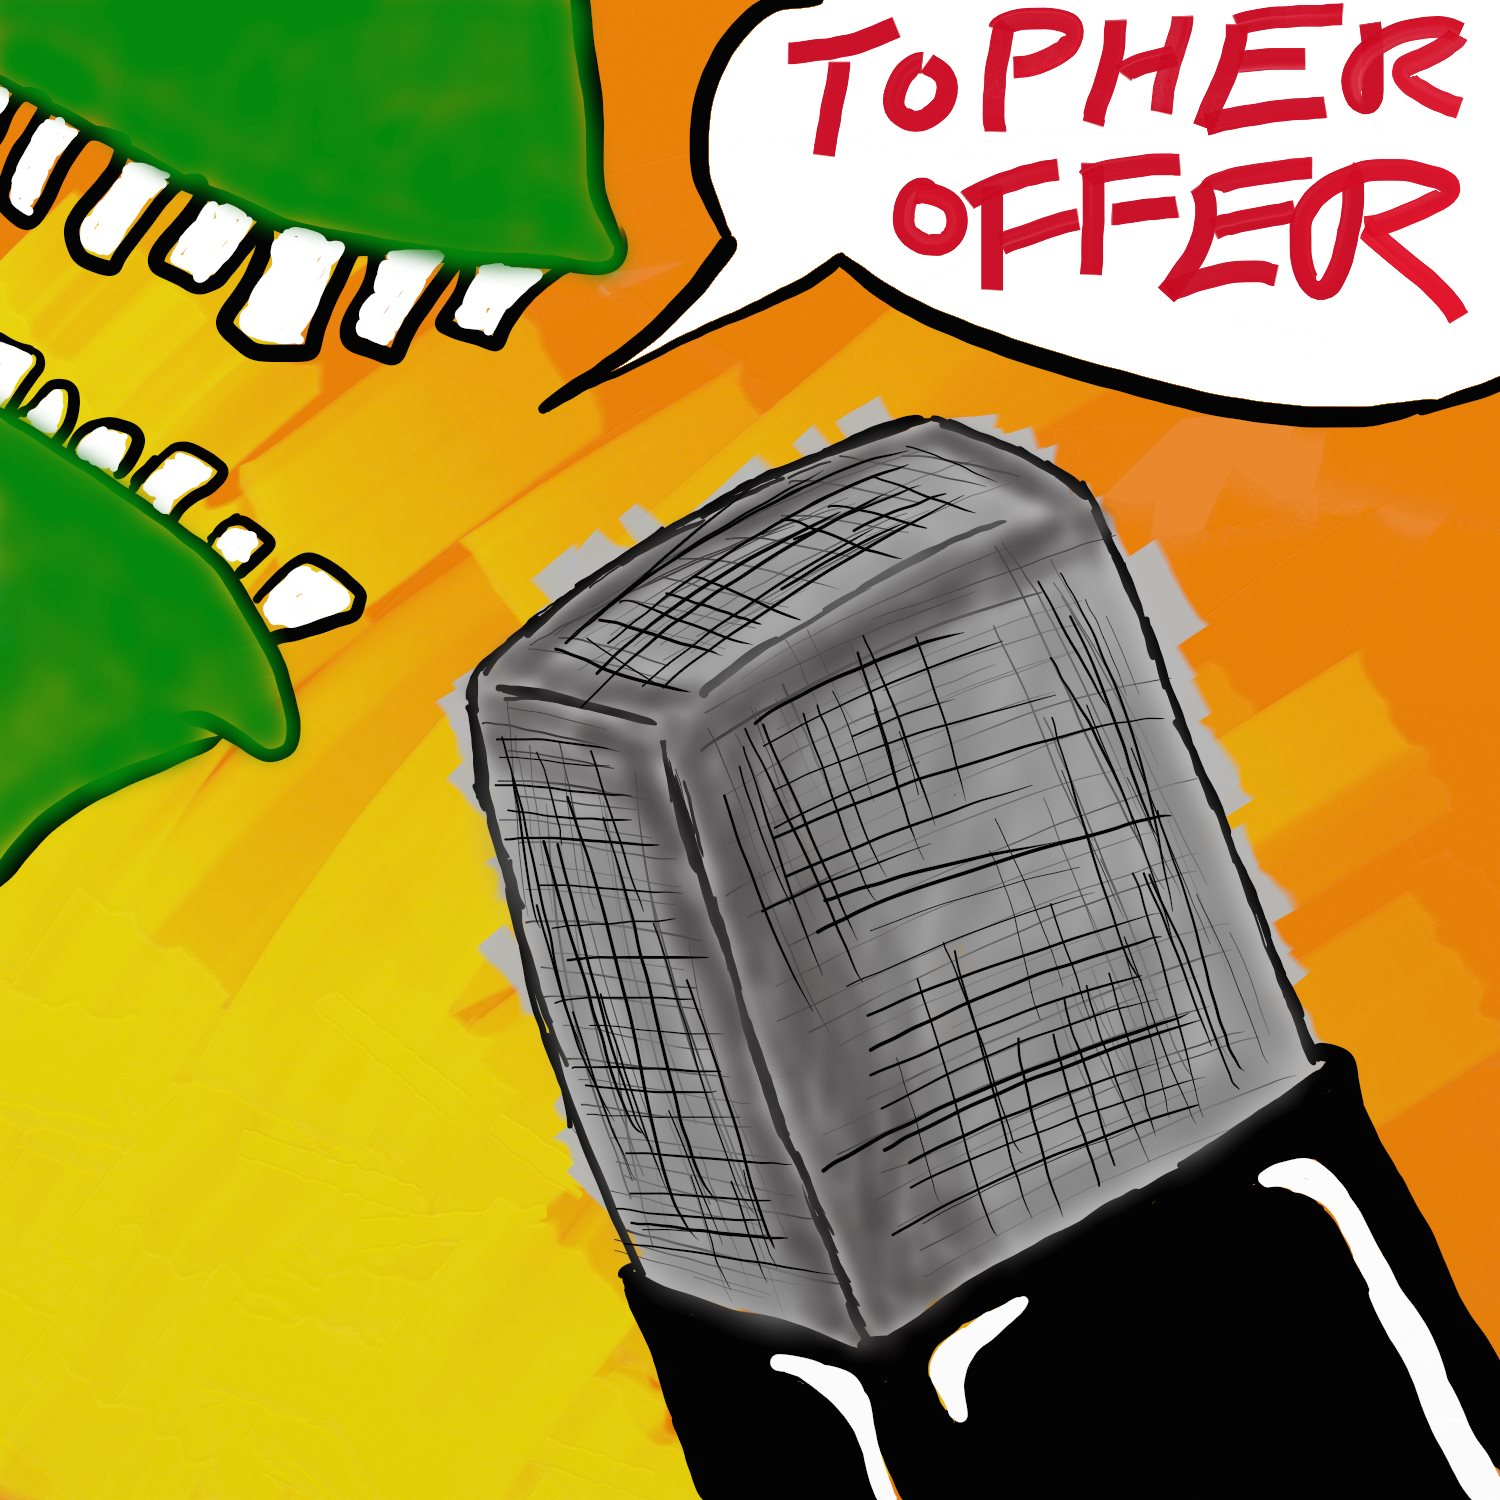 the topher offer Podcast